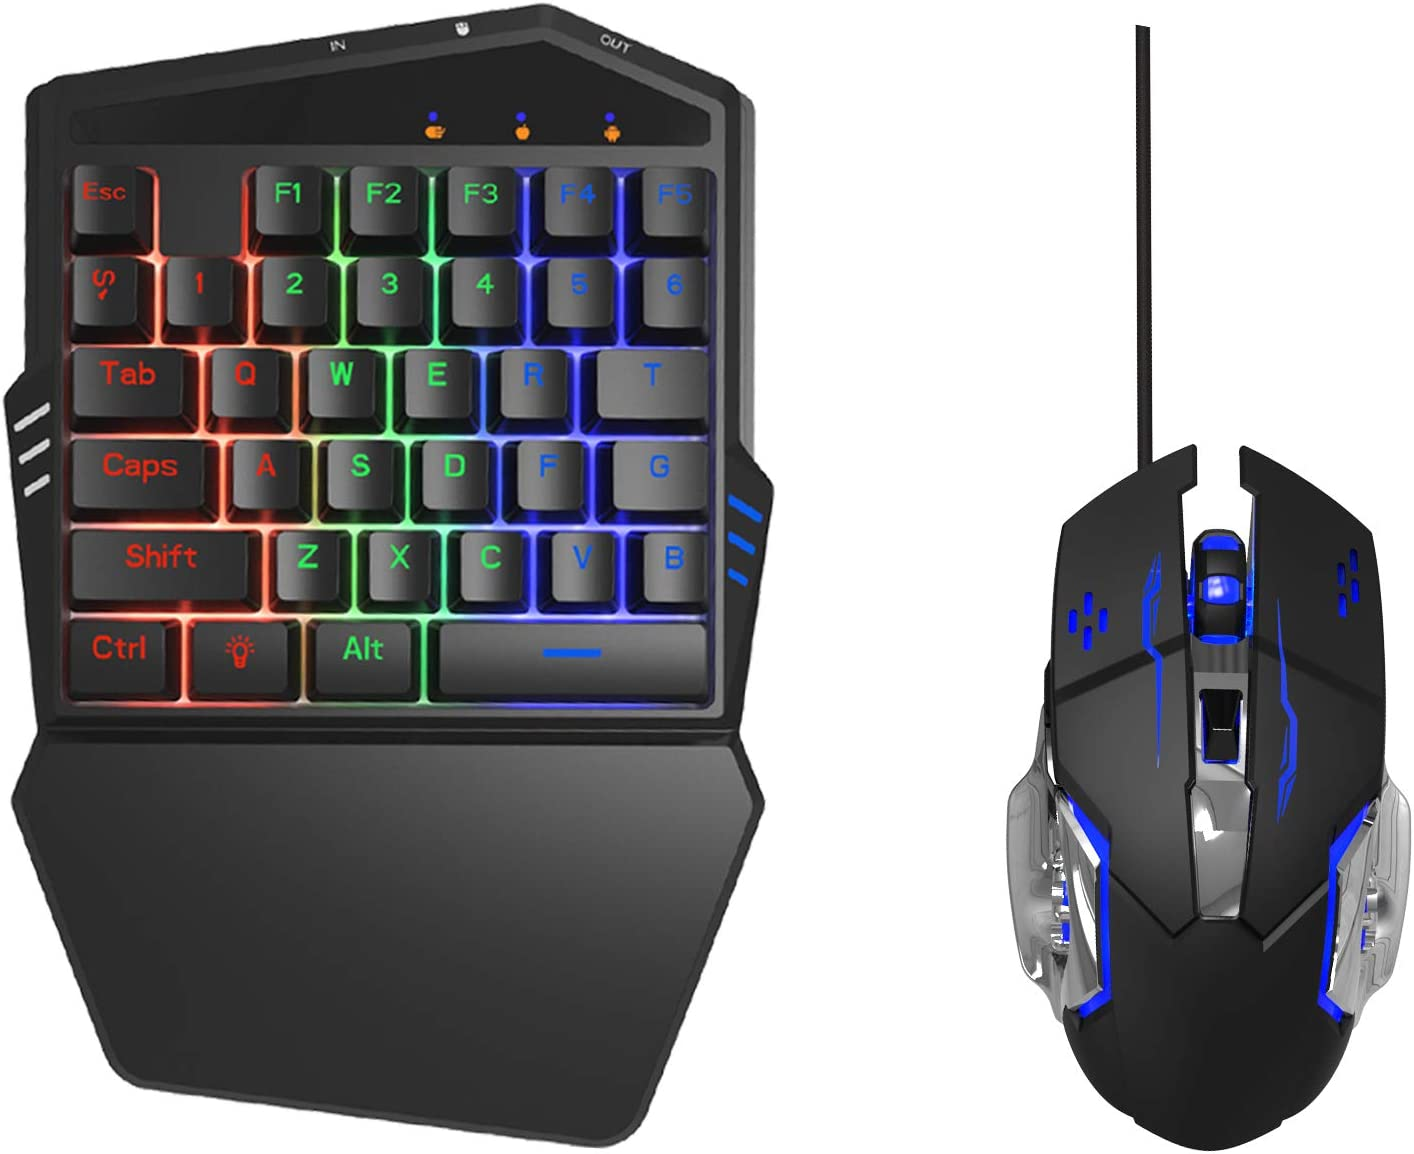 Max 55% OFF DarkWalker FO212 Mobile Gaming Keyboard Combo Andr for Mouse 100% quality warranty! and